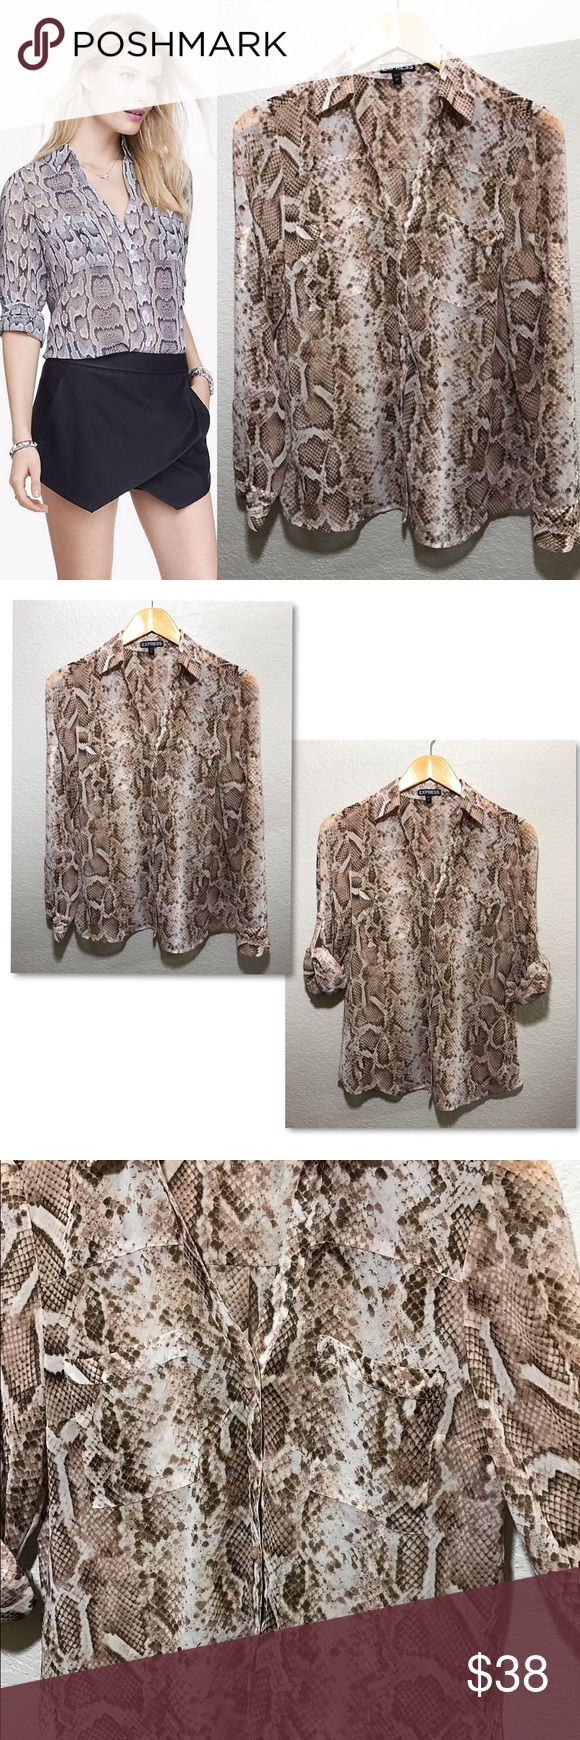 """Express Snakeskin Portofino Long Sleeve Blouse Excellent used condition. Taupe/brown colored snakeskin portofino top. I absolutely love all of Express' portofino tops! They are the definition of versatile. Perfect for a casual day, work day or night out! Semi sheer fabric. Material - 100% polyester Measurements laying flat - pit to pit(18.5"""") length(28"""") Express Tops"""